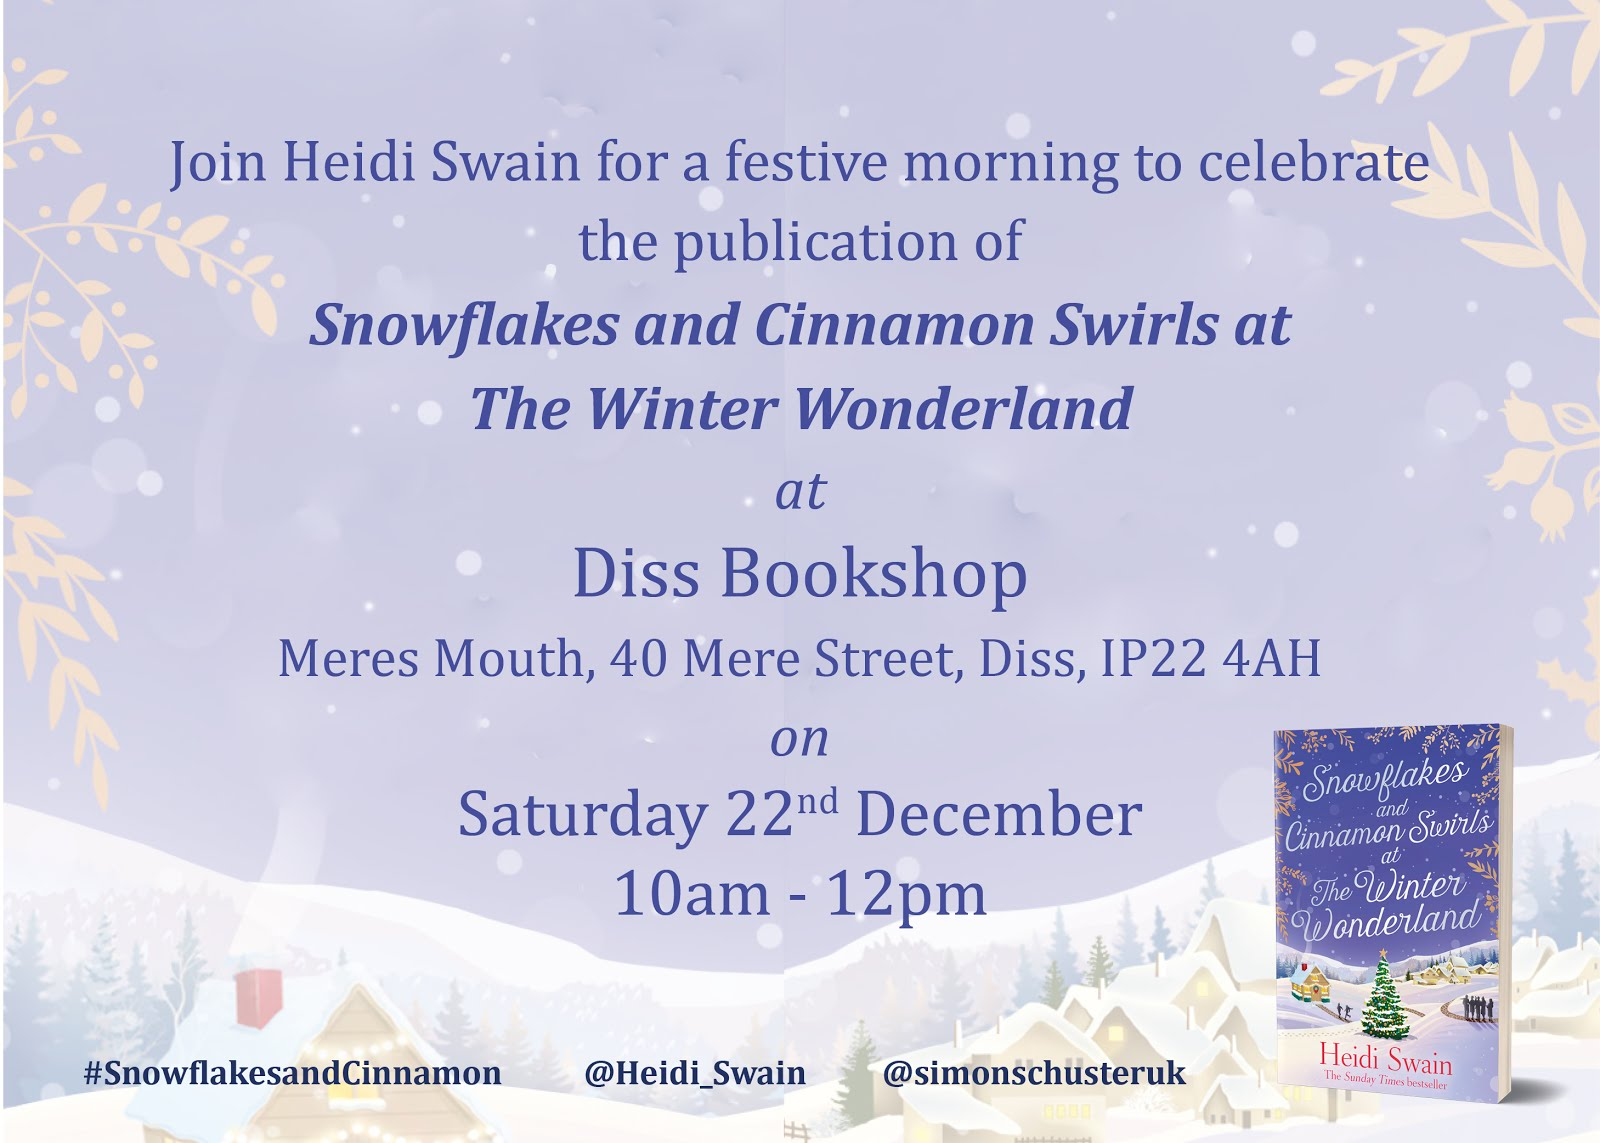 Book signing in Diss on December 22nd